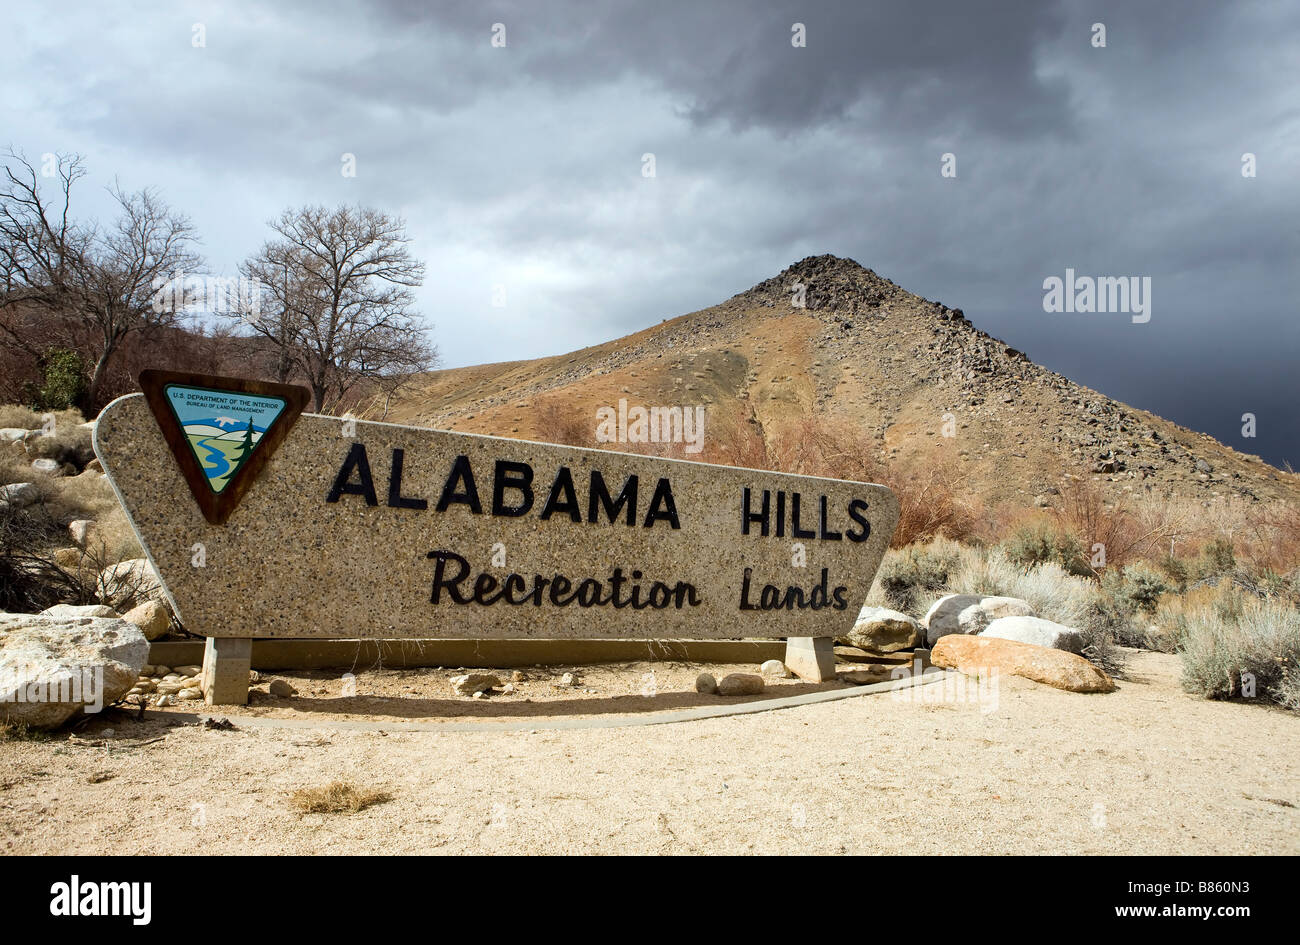 BLM welcome sign for Alabama Hills Recreation Lands Lone Pine California - Stock Image